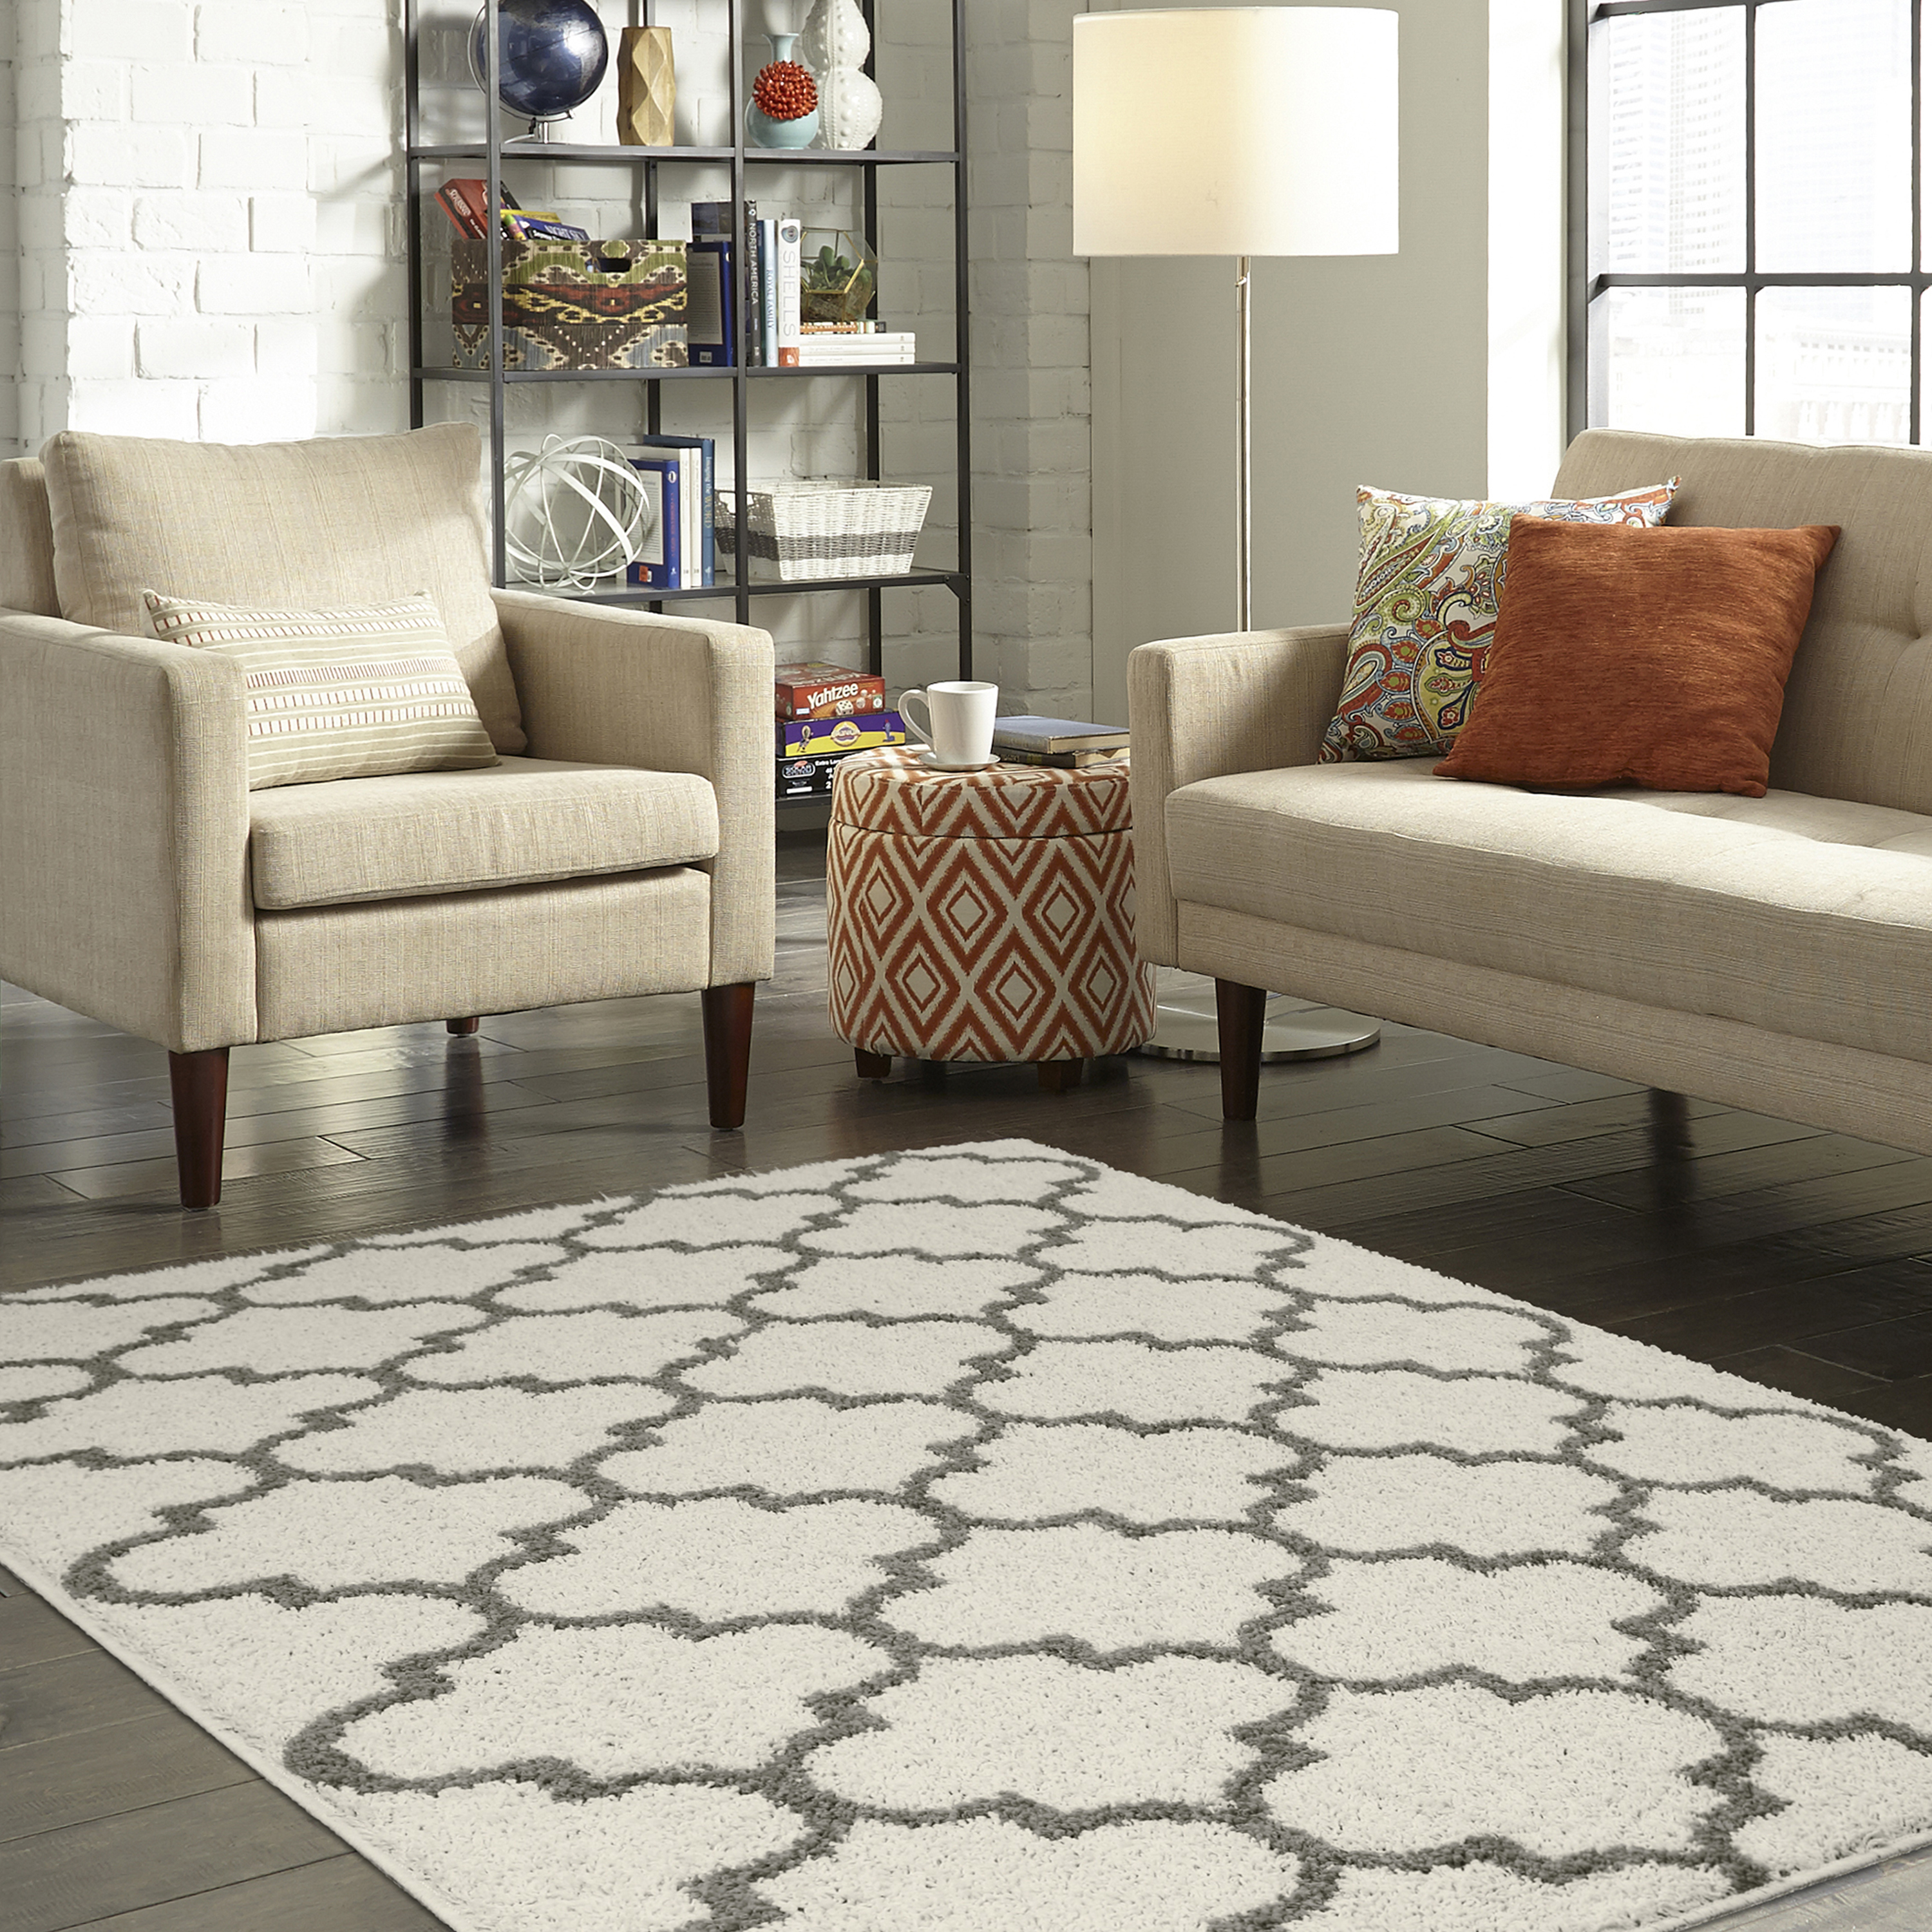 Shag Area Rugs For Living Room mainstays trellis 2-color shag area rug or runner - walmart